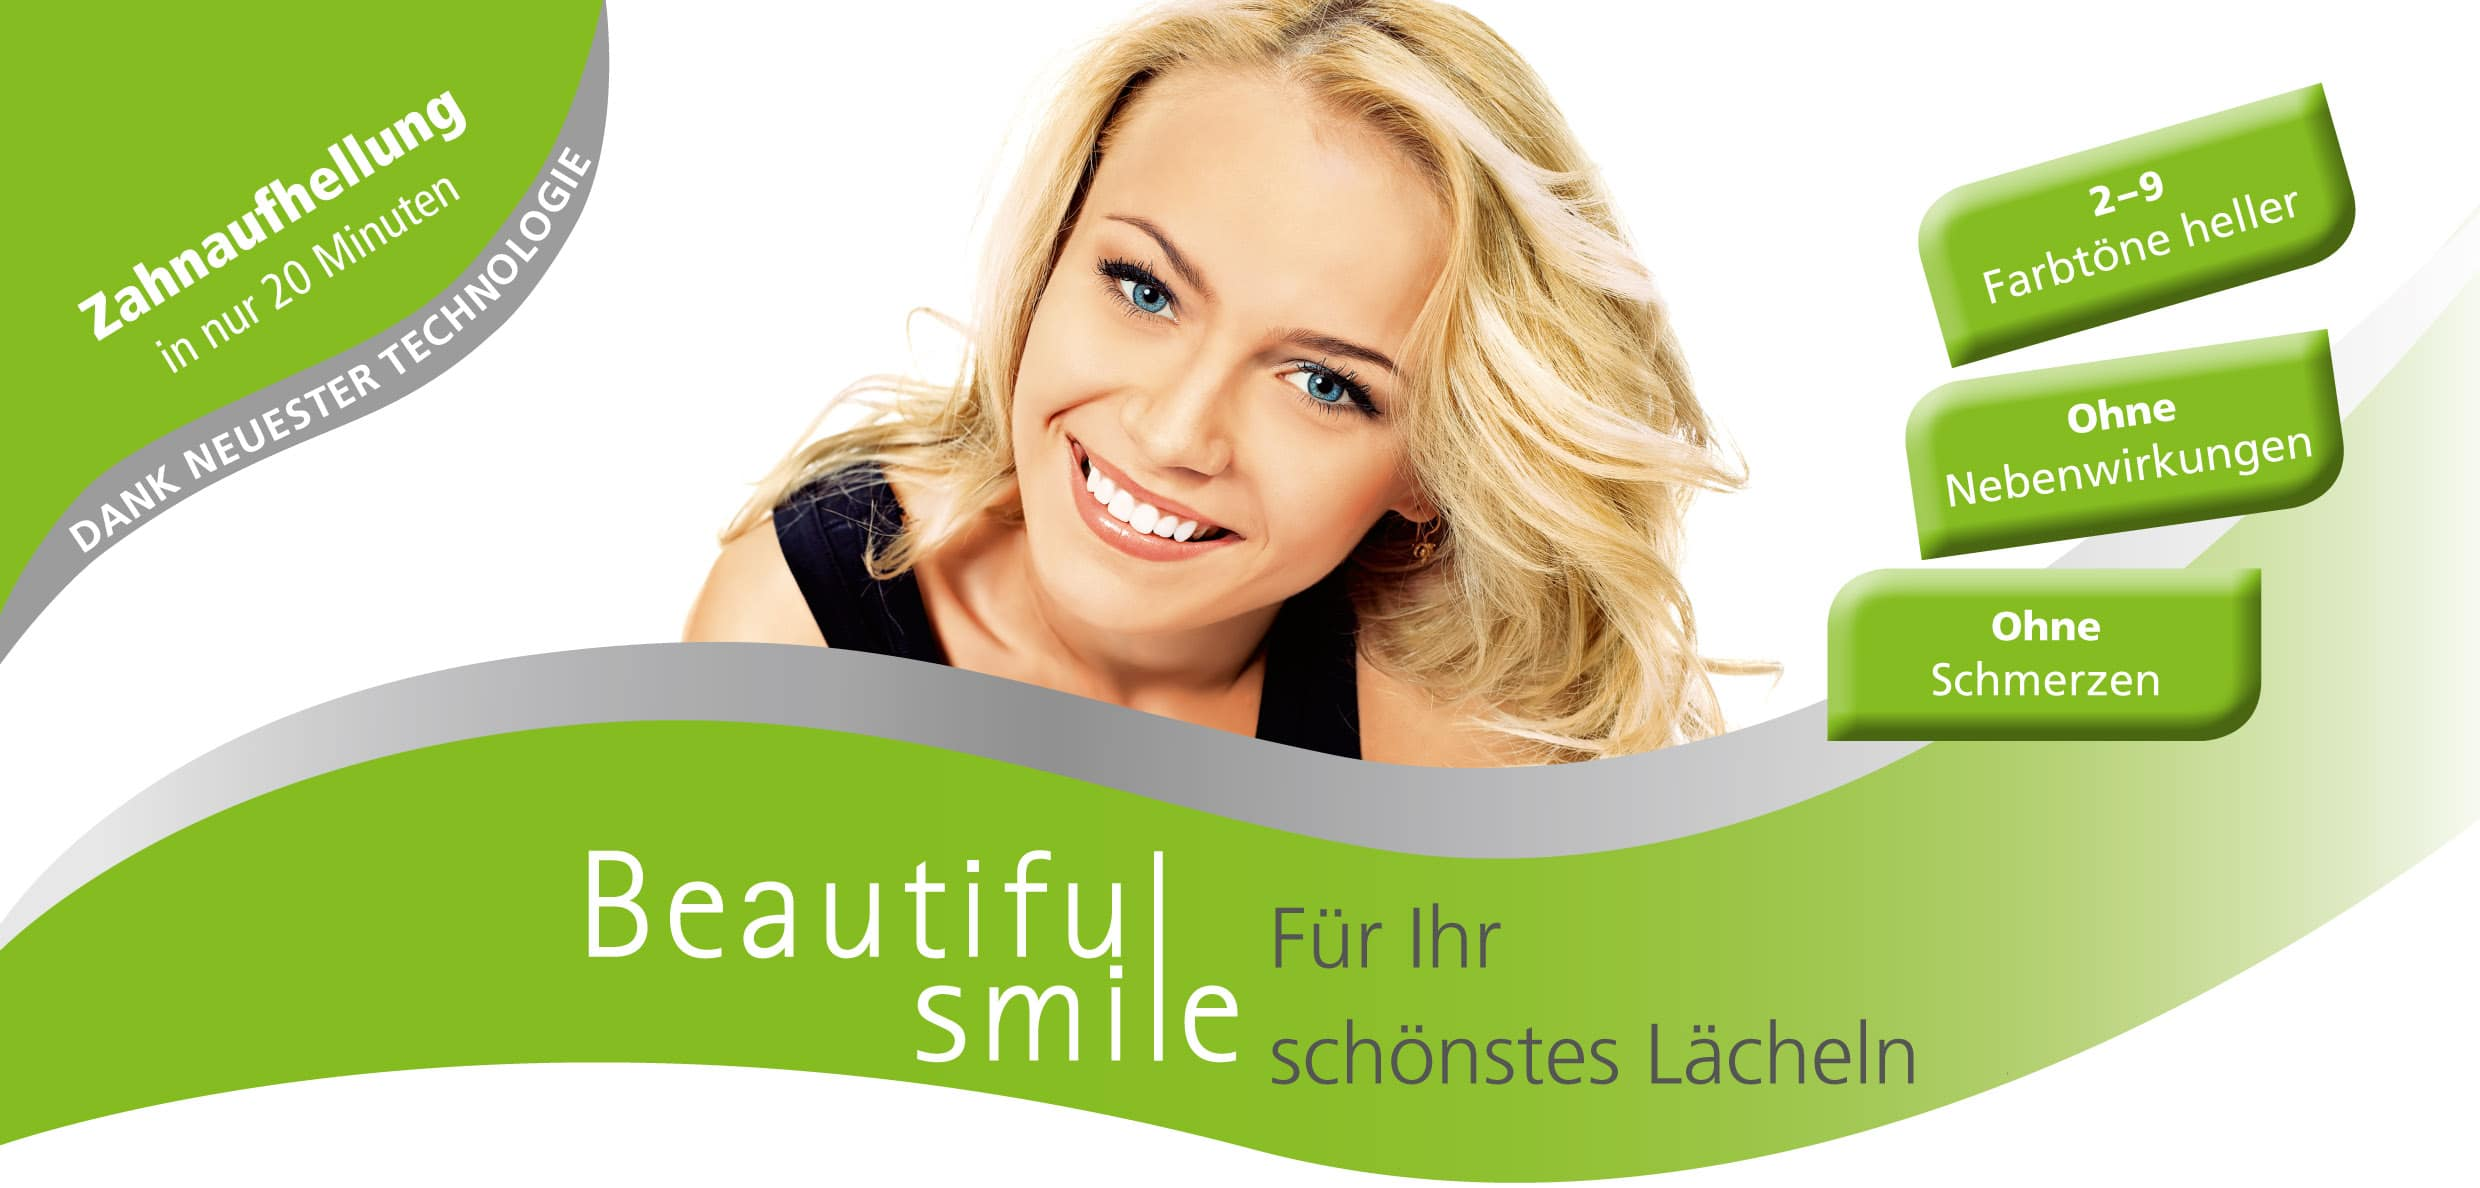 beautiful smile zahnaufhellung